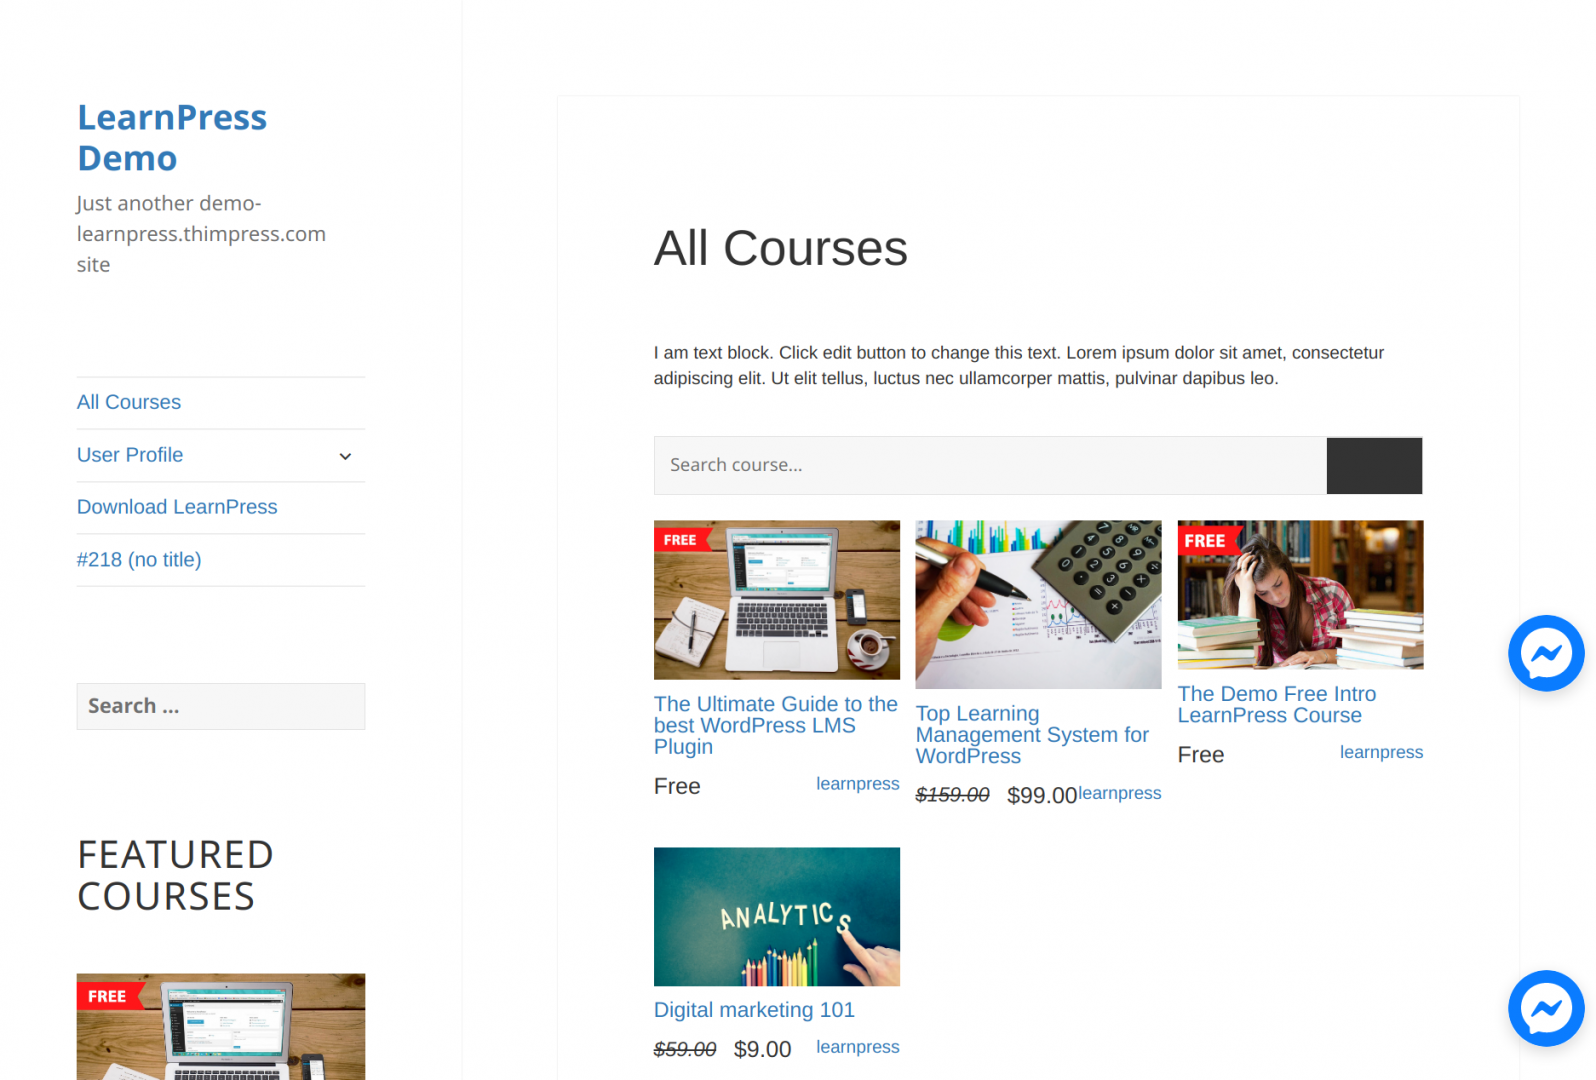 PayPal support is one of the best LMS's features - and is included in LearnPress.